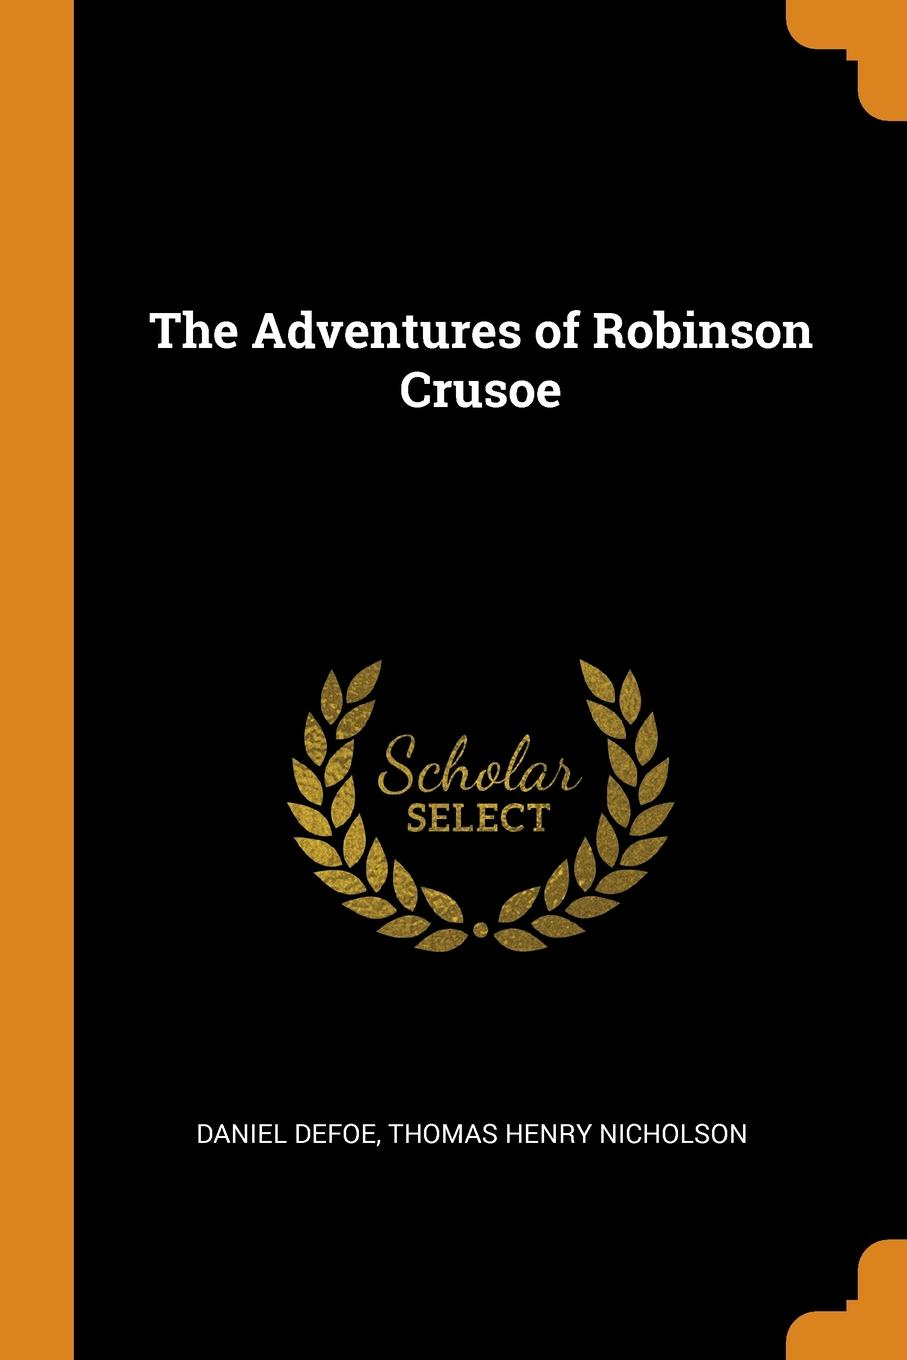 Daniel Defoe, Thomas Henry Nicholson The Adventures of Robinson Crusoe